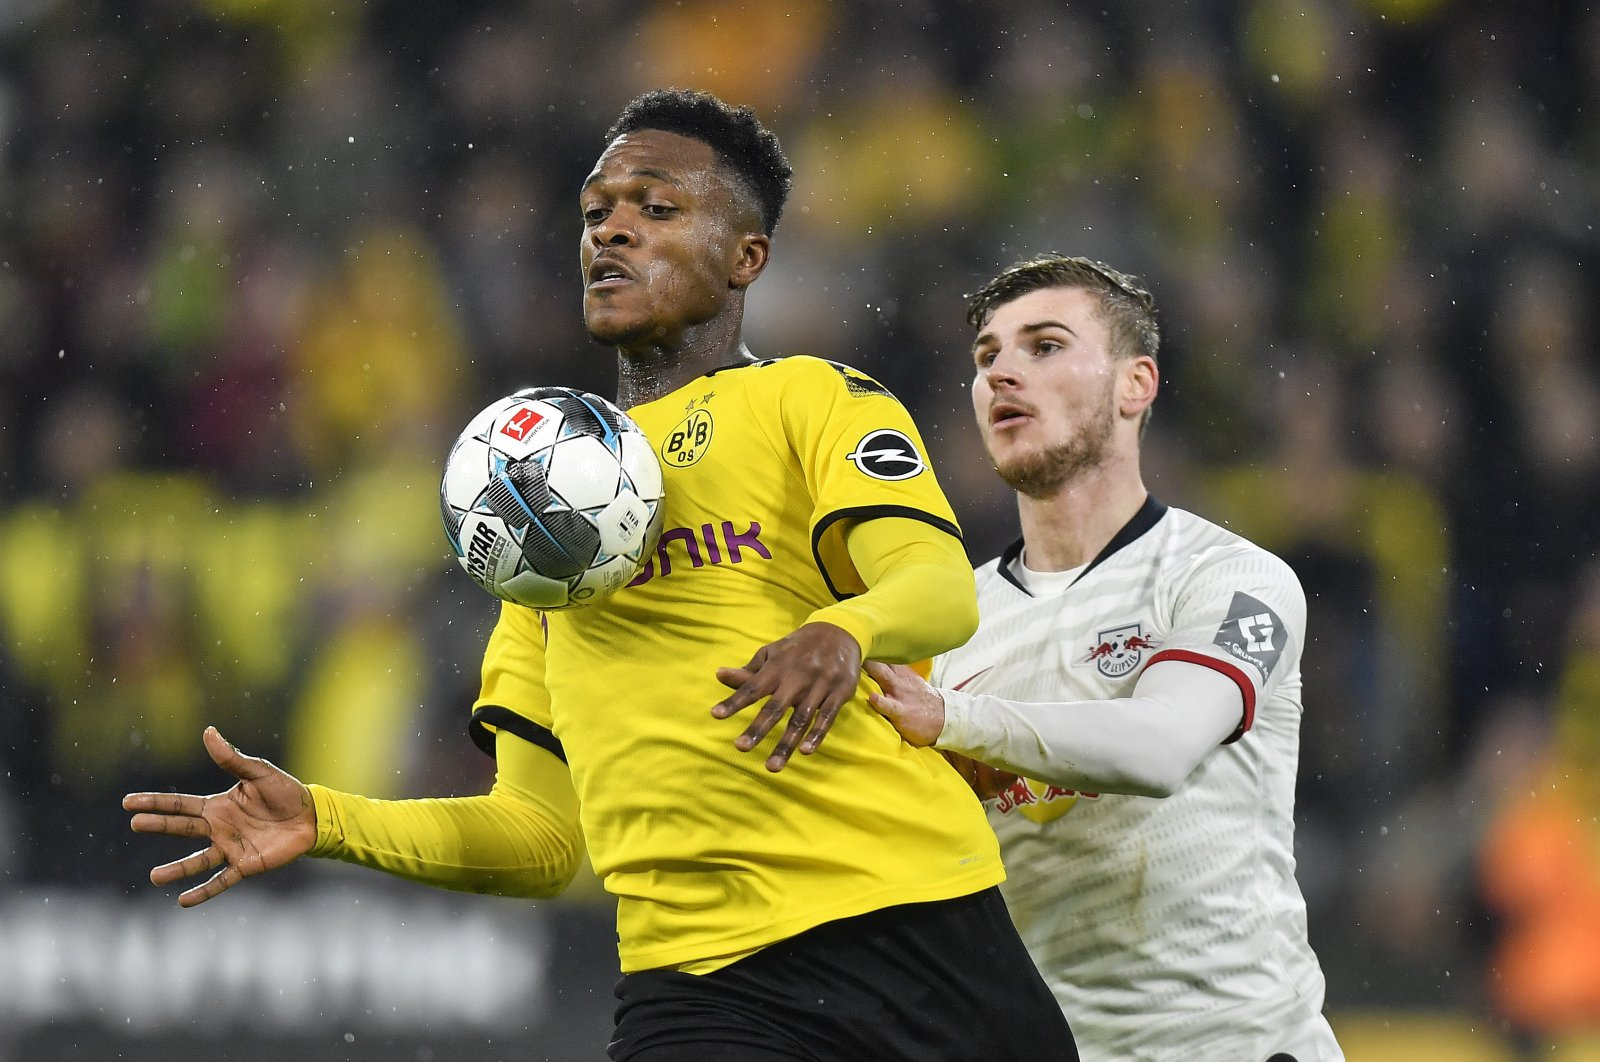 Dortmund's Dan-Axel Zagadou, left, and Leipzig's Timo Werner challenge for the ball during their German Bundesliga match in Dortmund, Germany, Dec. 17, 2019. (AP Photo)